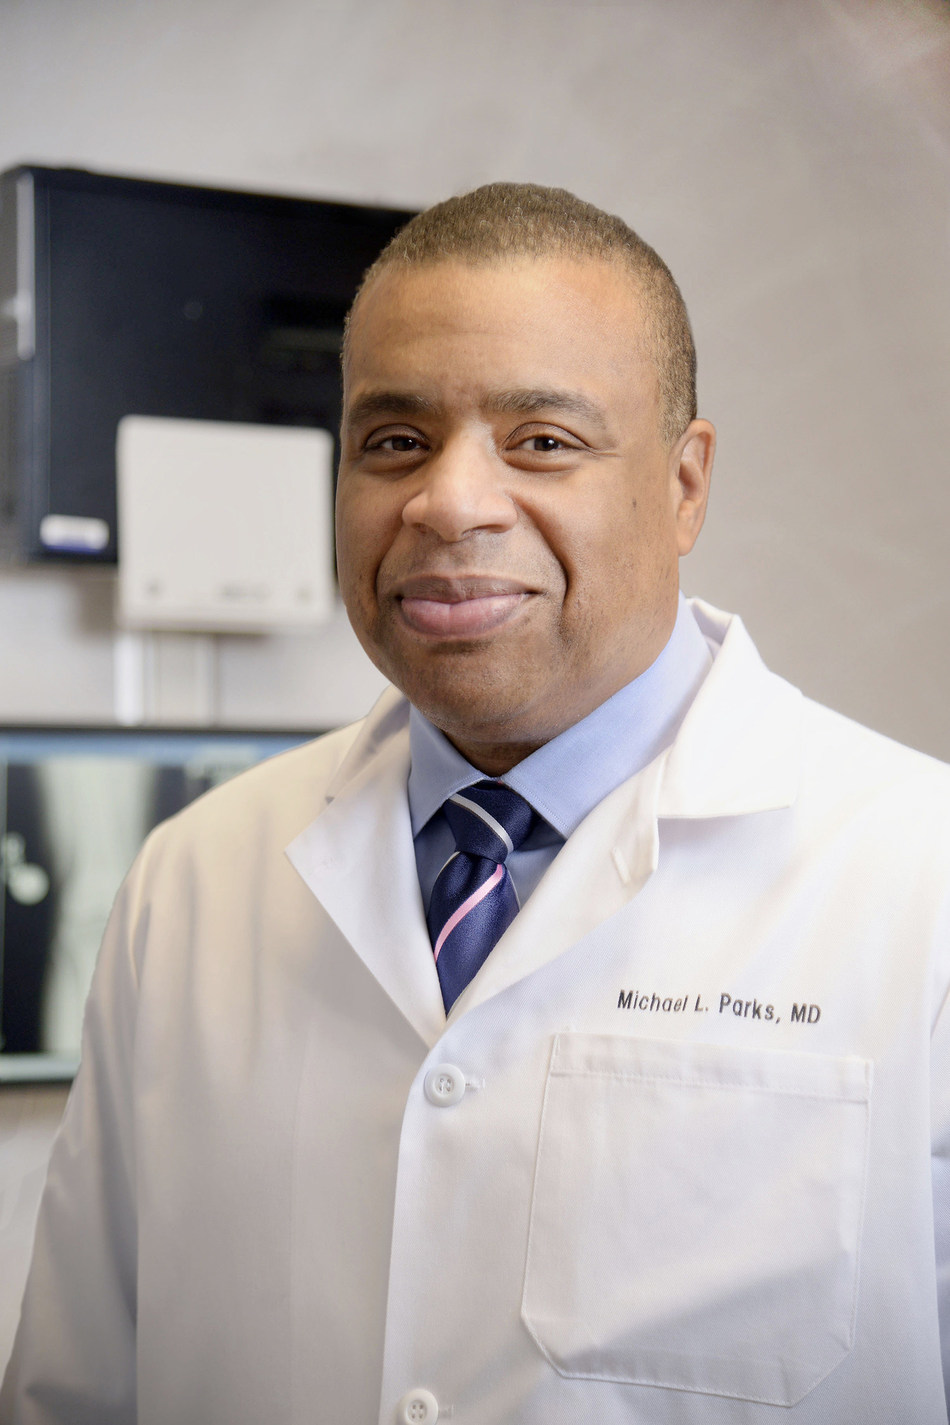 Michael L. Parks, MD, receives American Academy of Orthopaedic Surgeons' Diversity Award